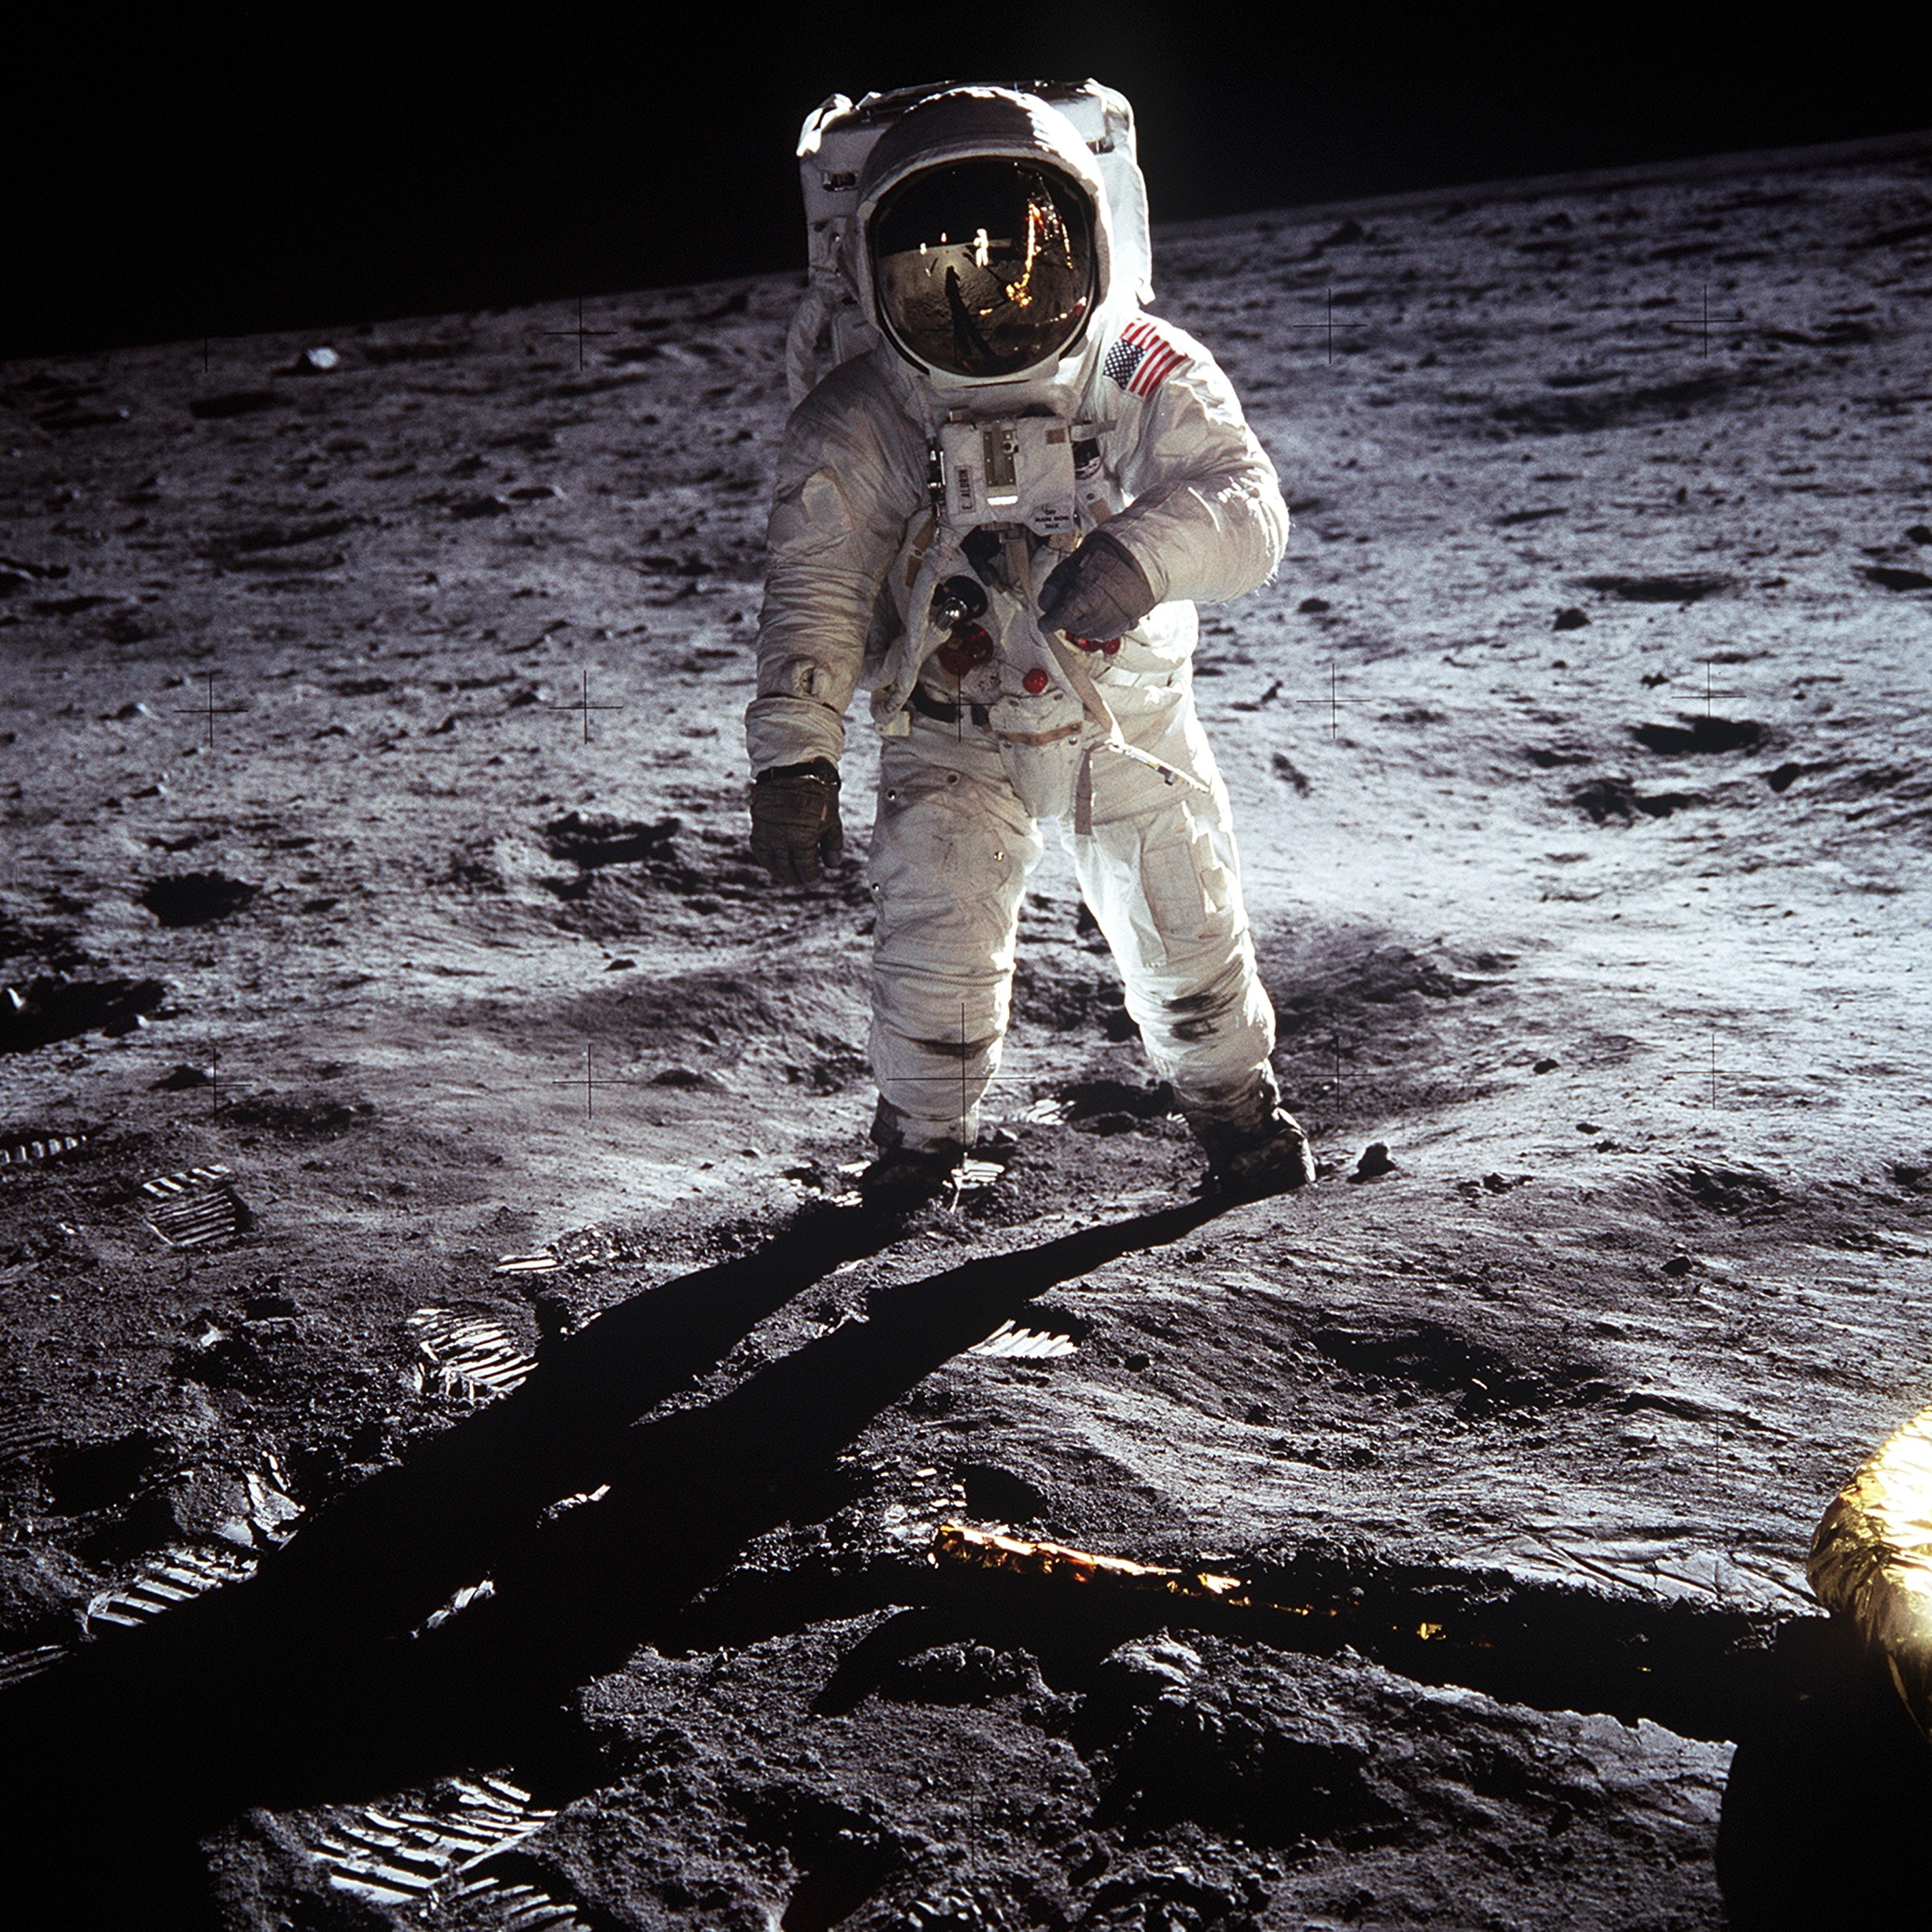 apollo astronauts moon landing - photo #4